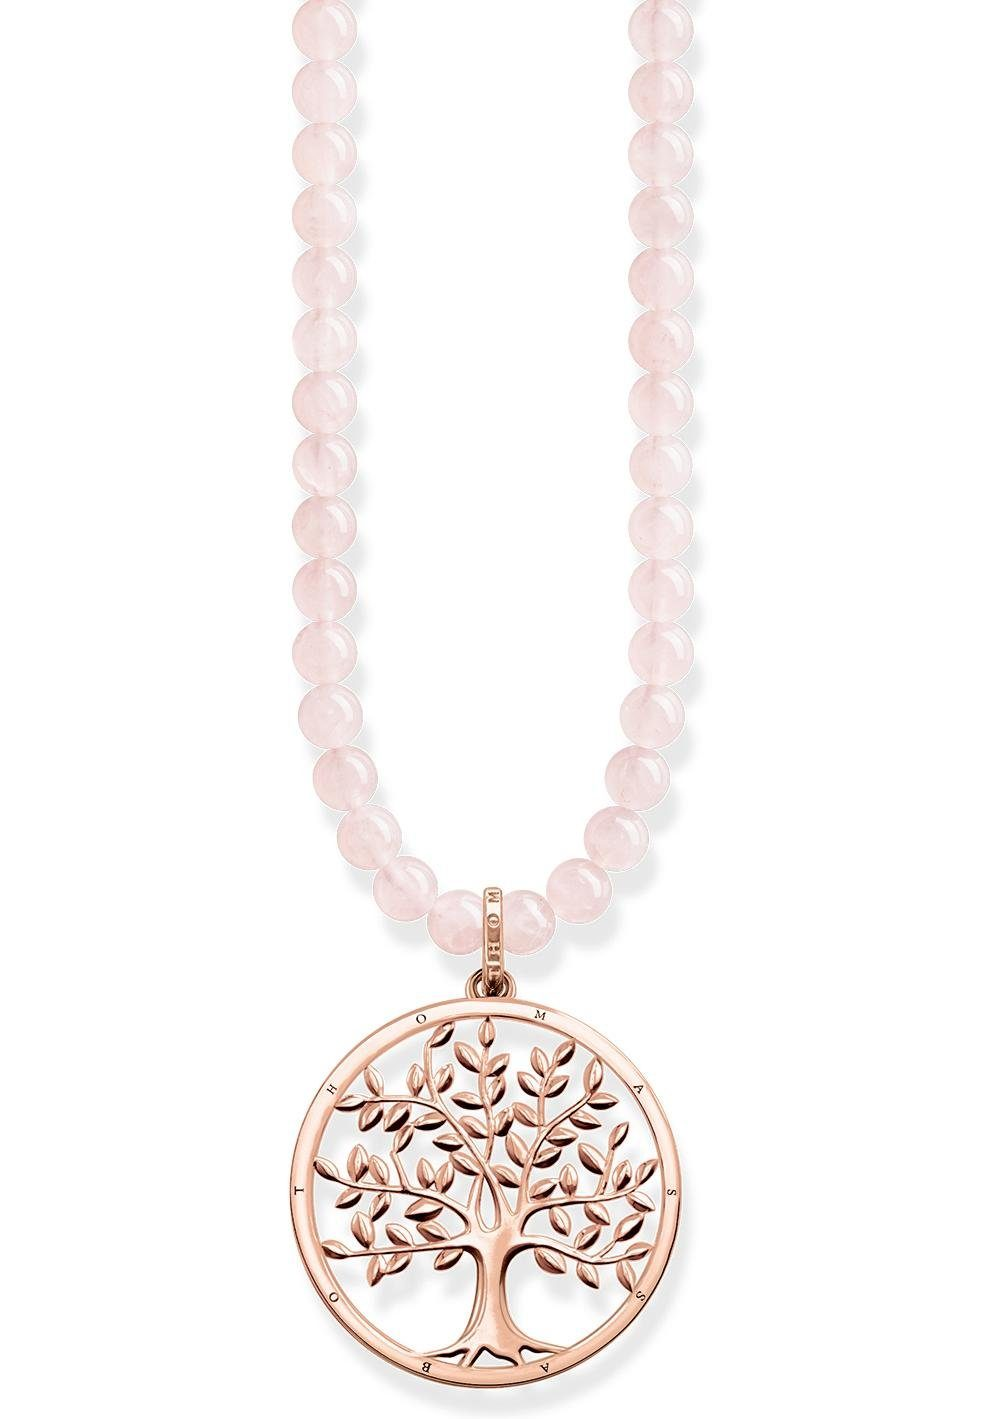 THOMAS SABO Kette mit Anhänger »Power Necklace Tree of Love Rosa, KE1662-536-9-L60«, mit Rosenquarz